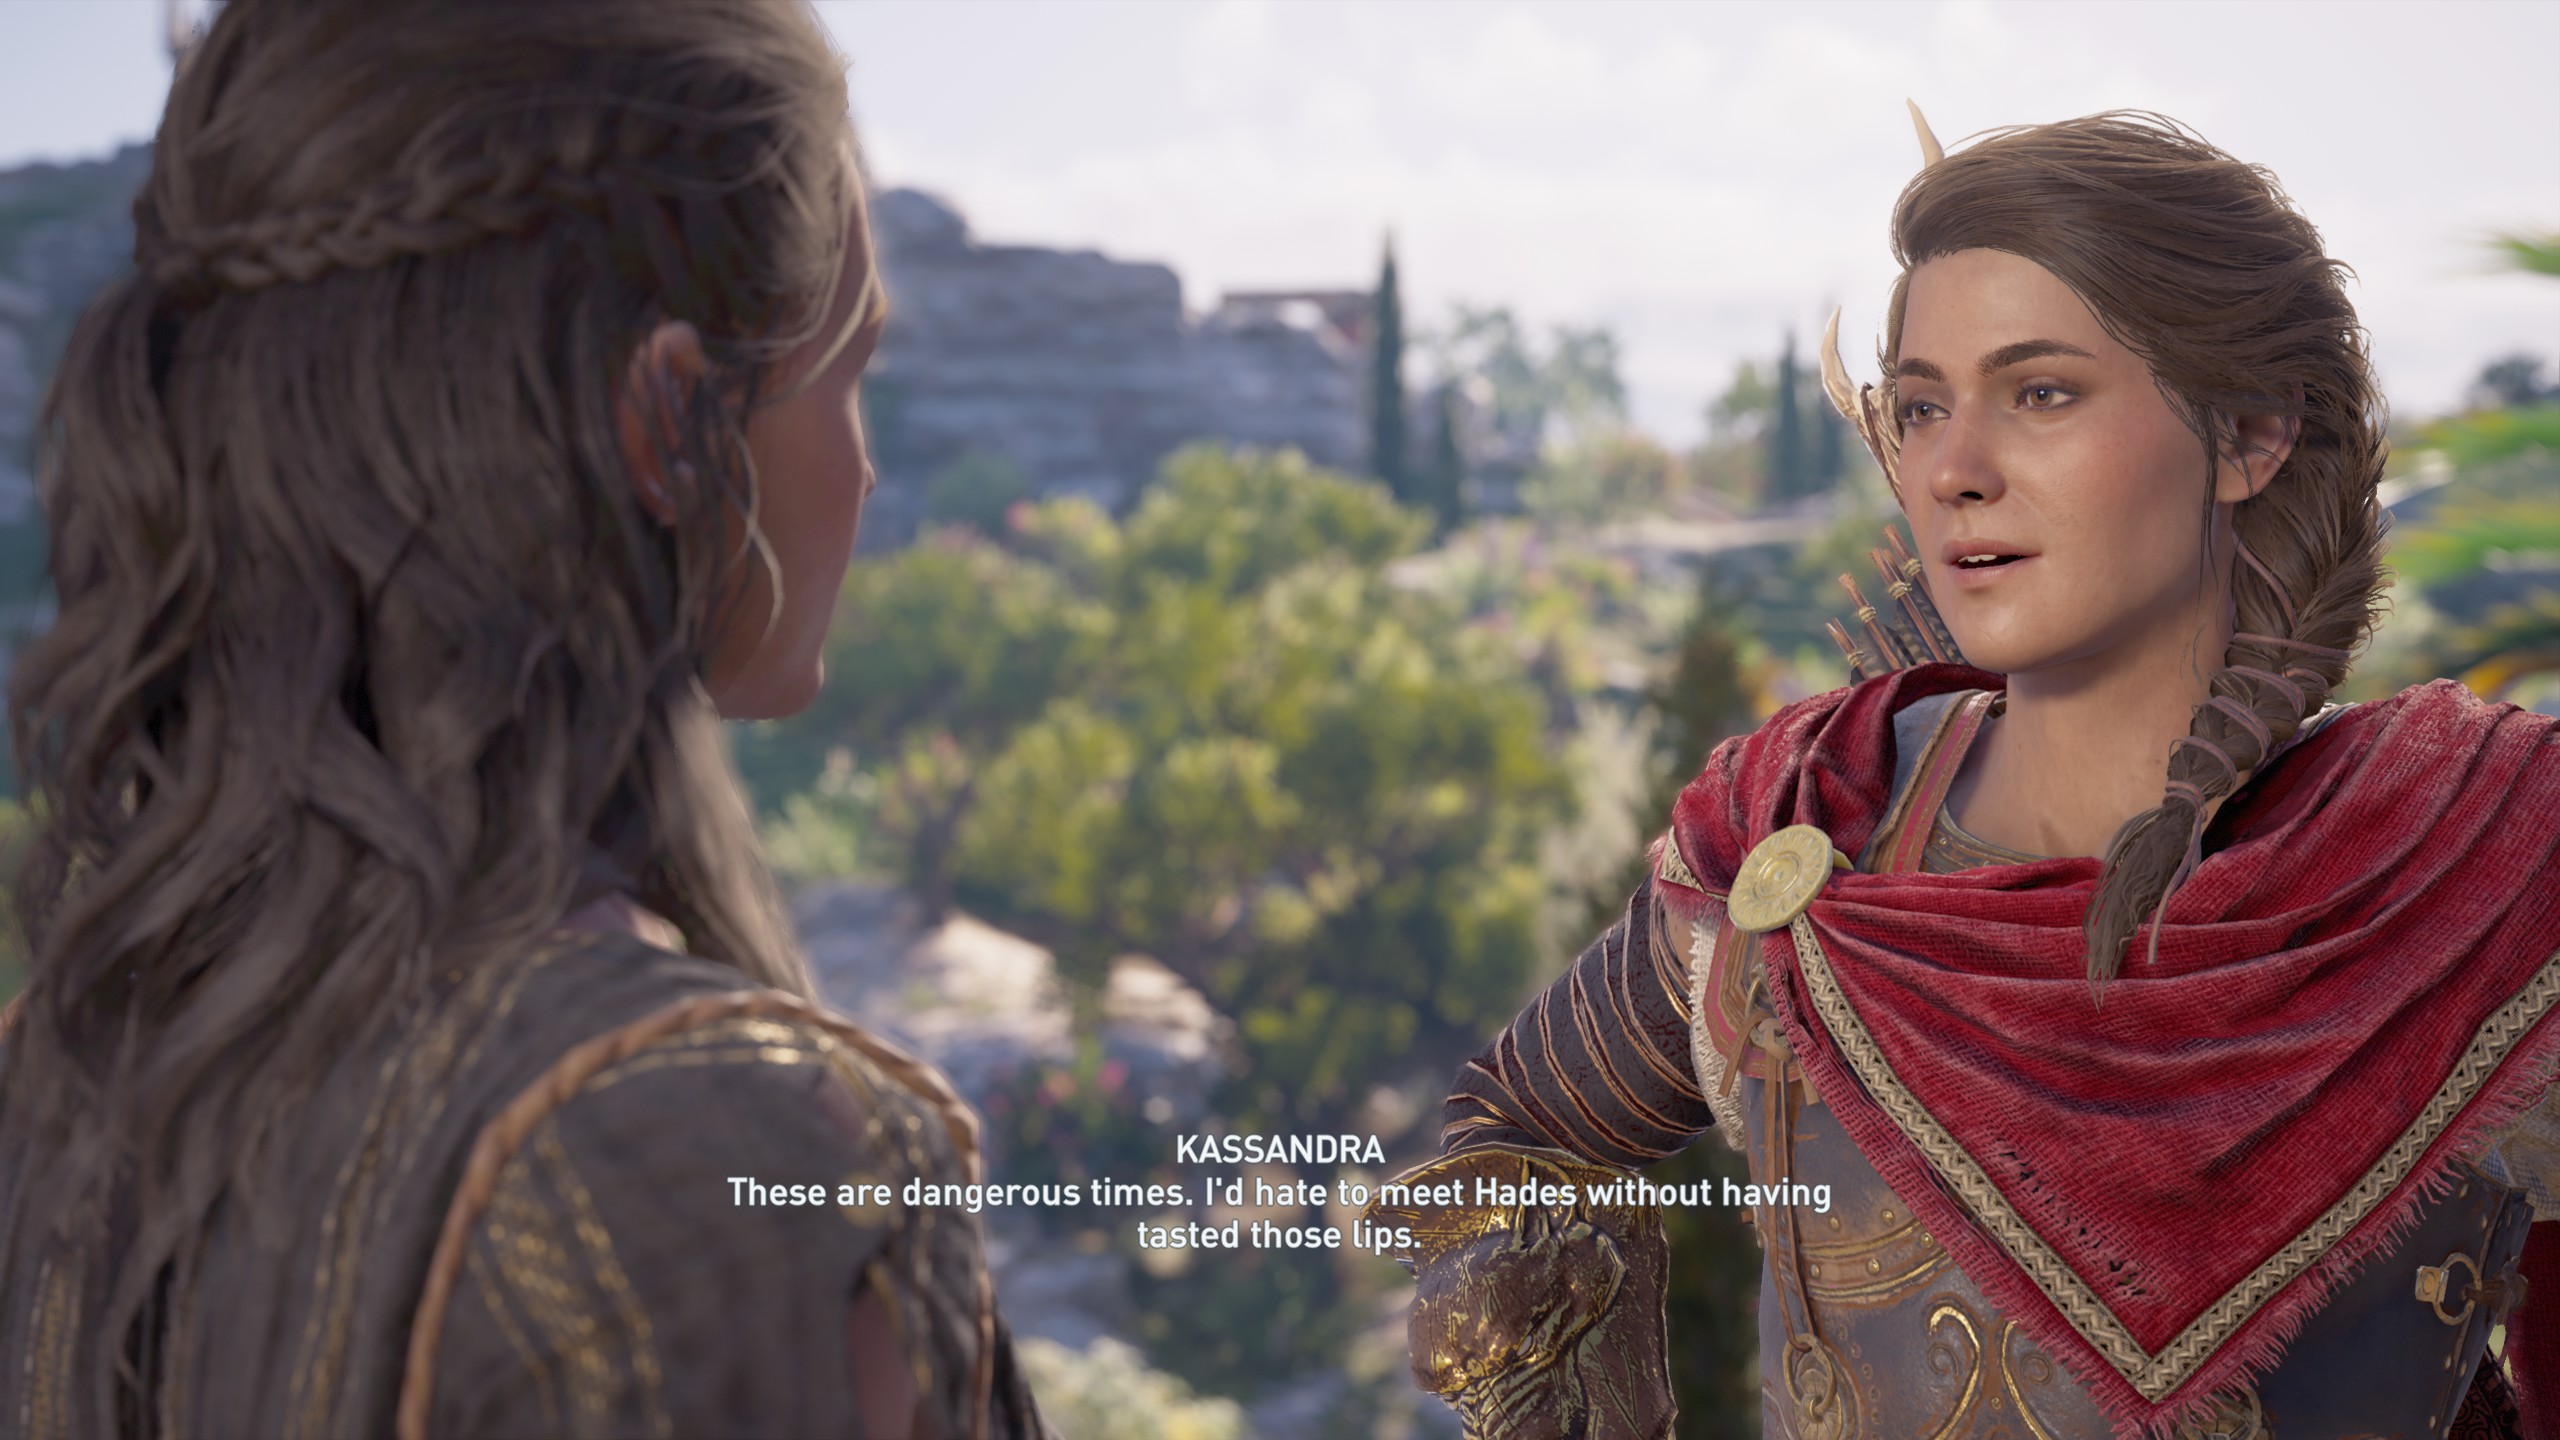 Assassin's Creed Odyssey - Best Action Games 2020